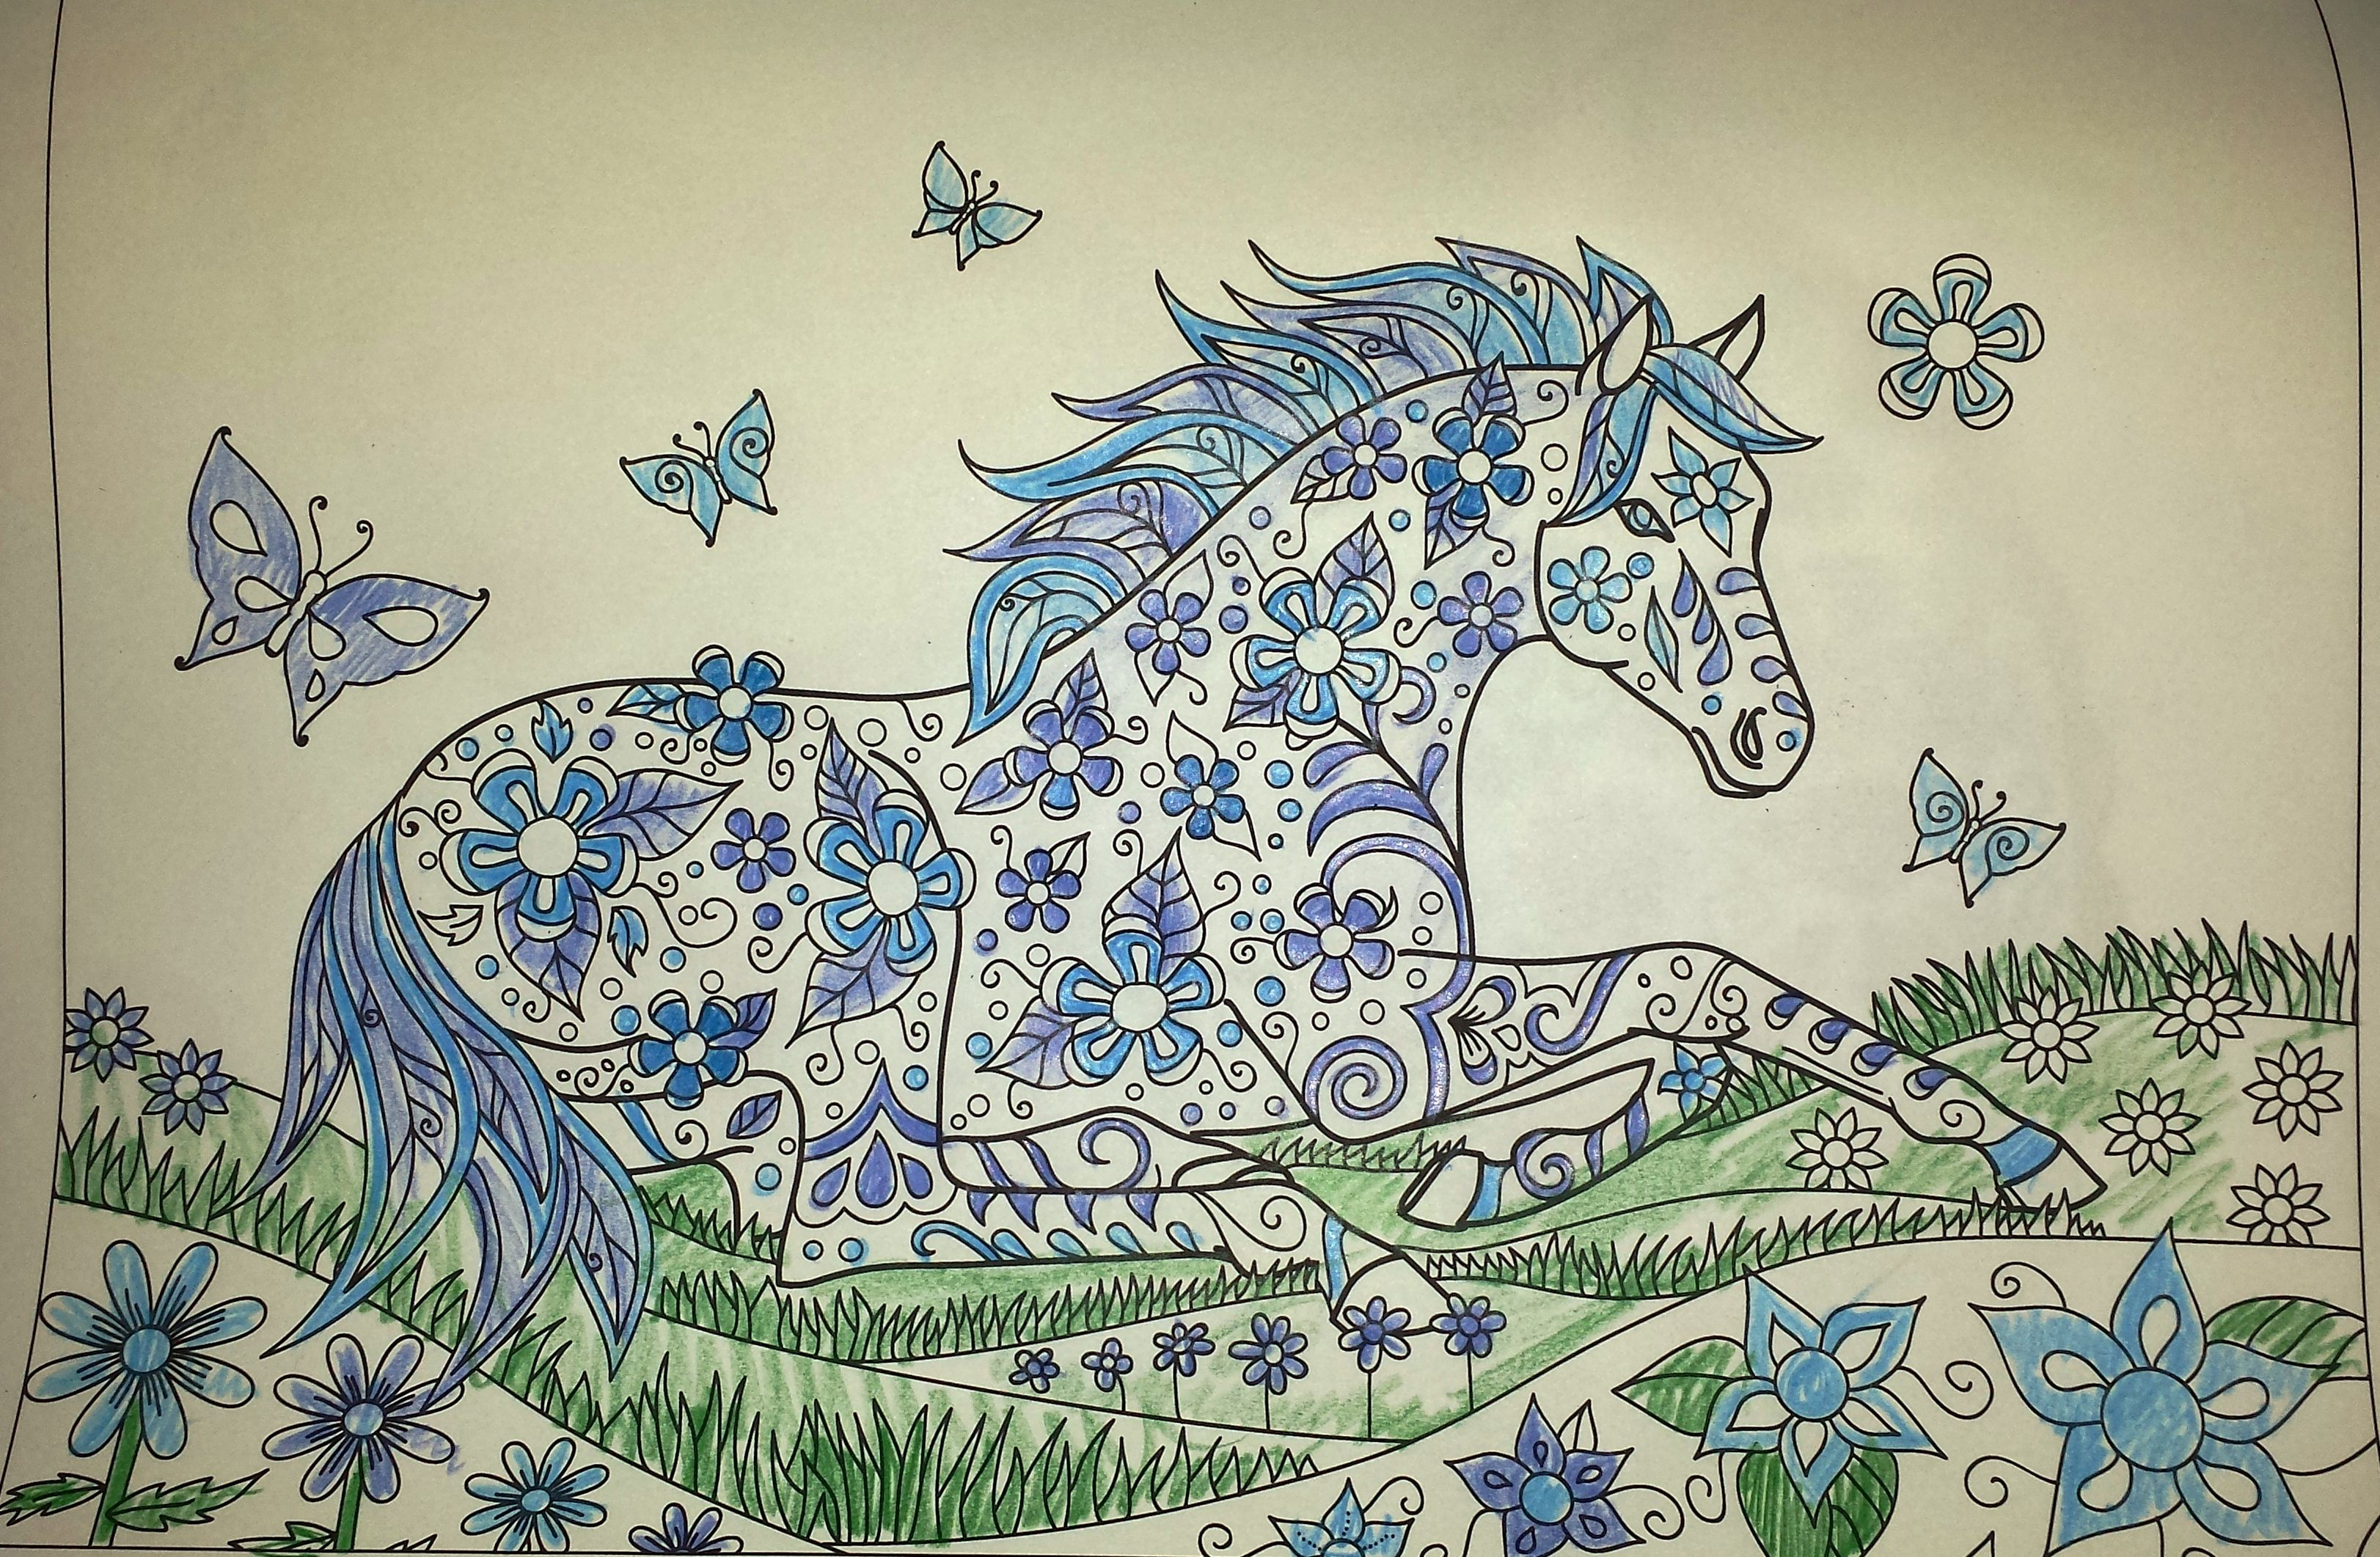 Horse Coloring Pages Just quickly colored this to help sleep